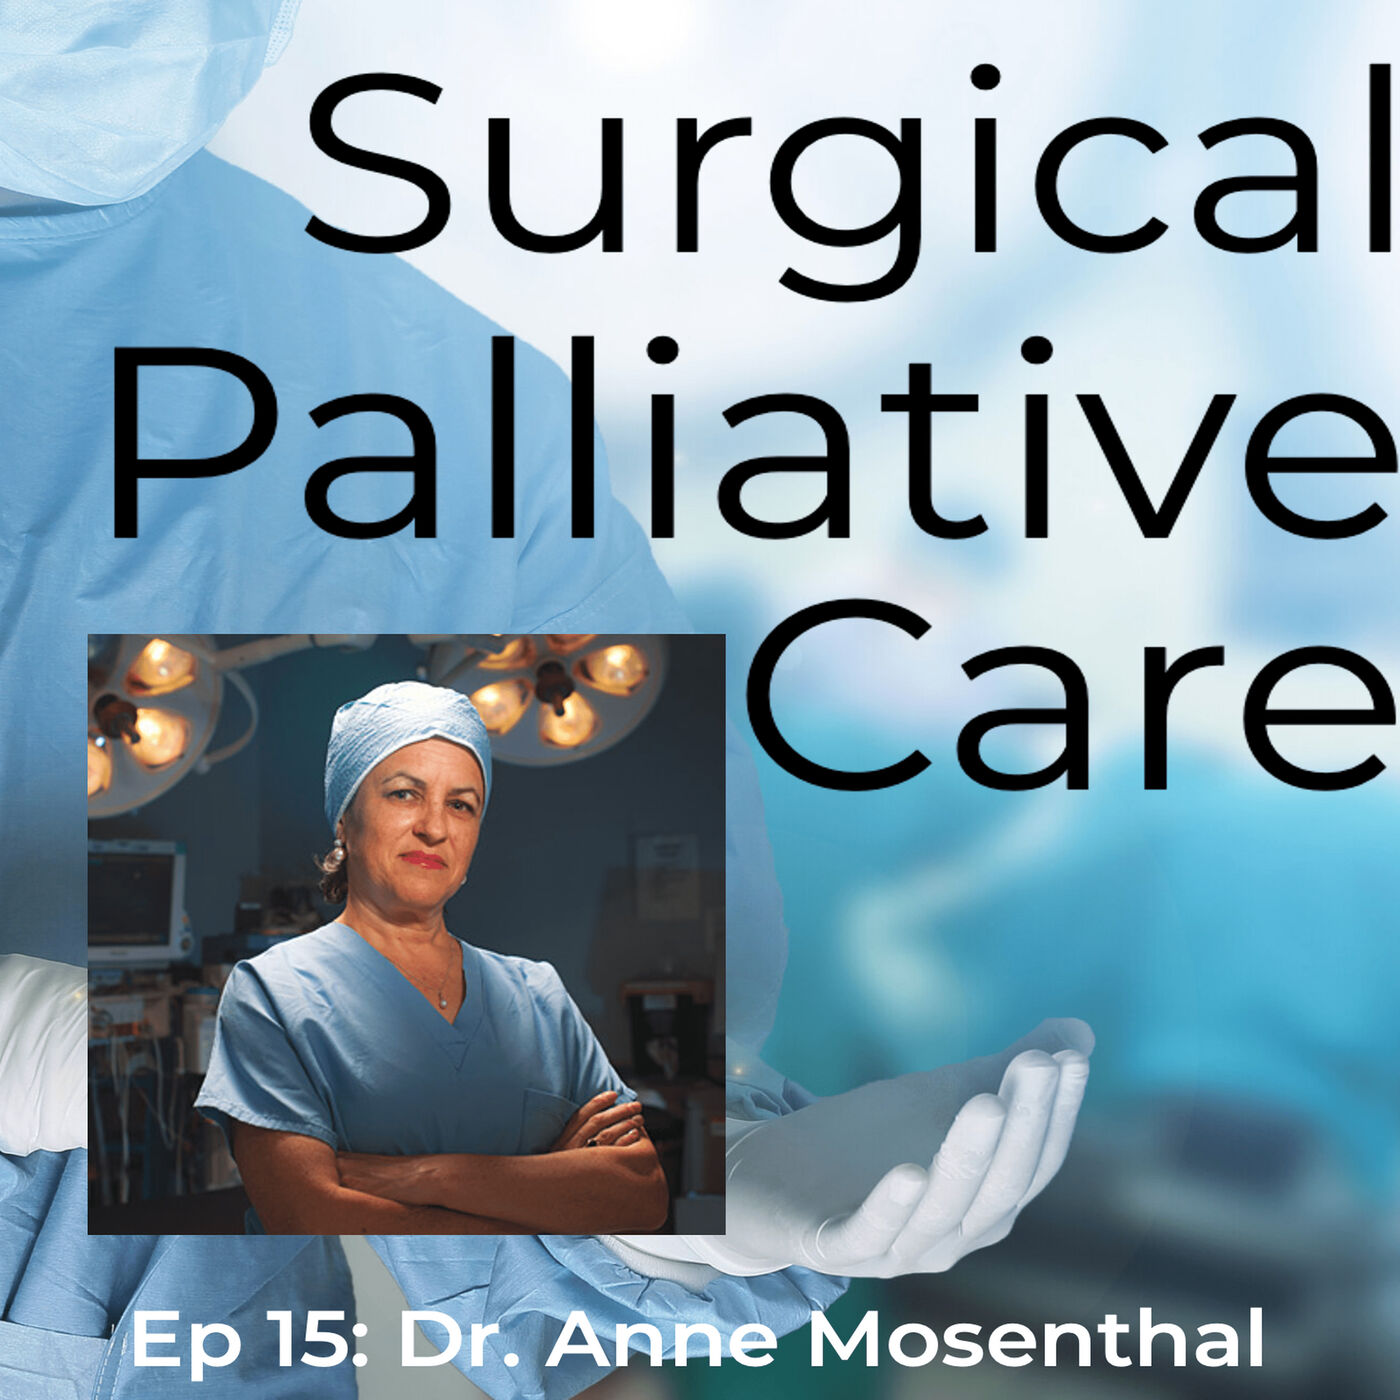 Dr. Anne Mosenthal:  The Mother of Surgical Palliative Care